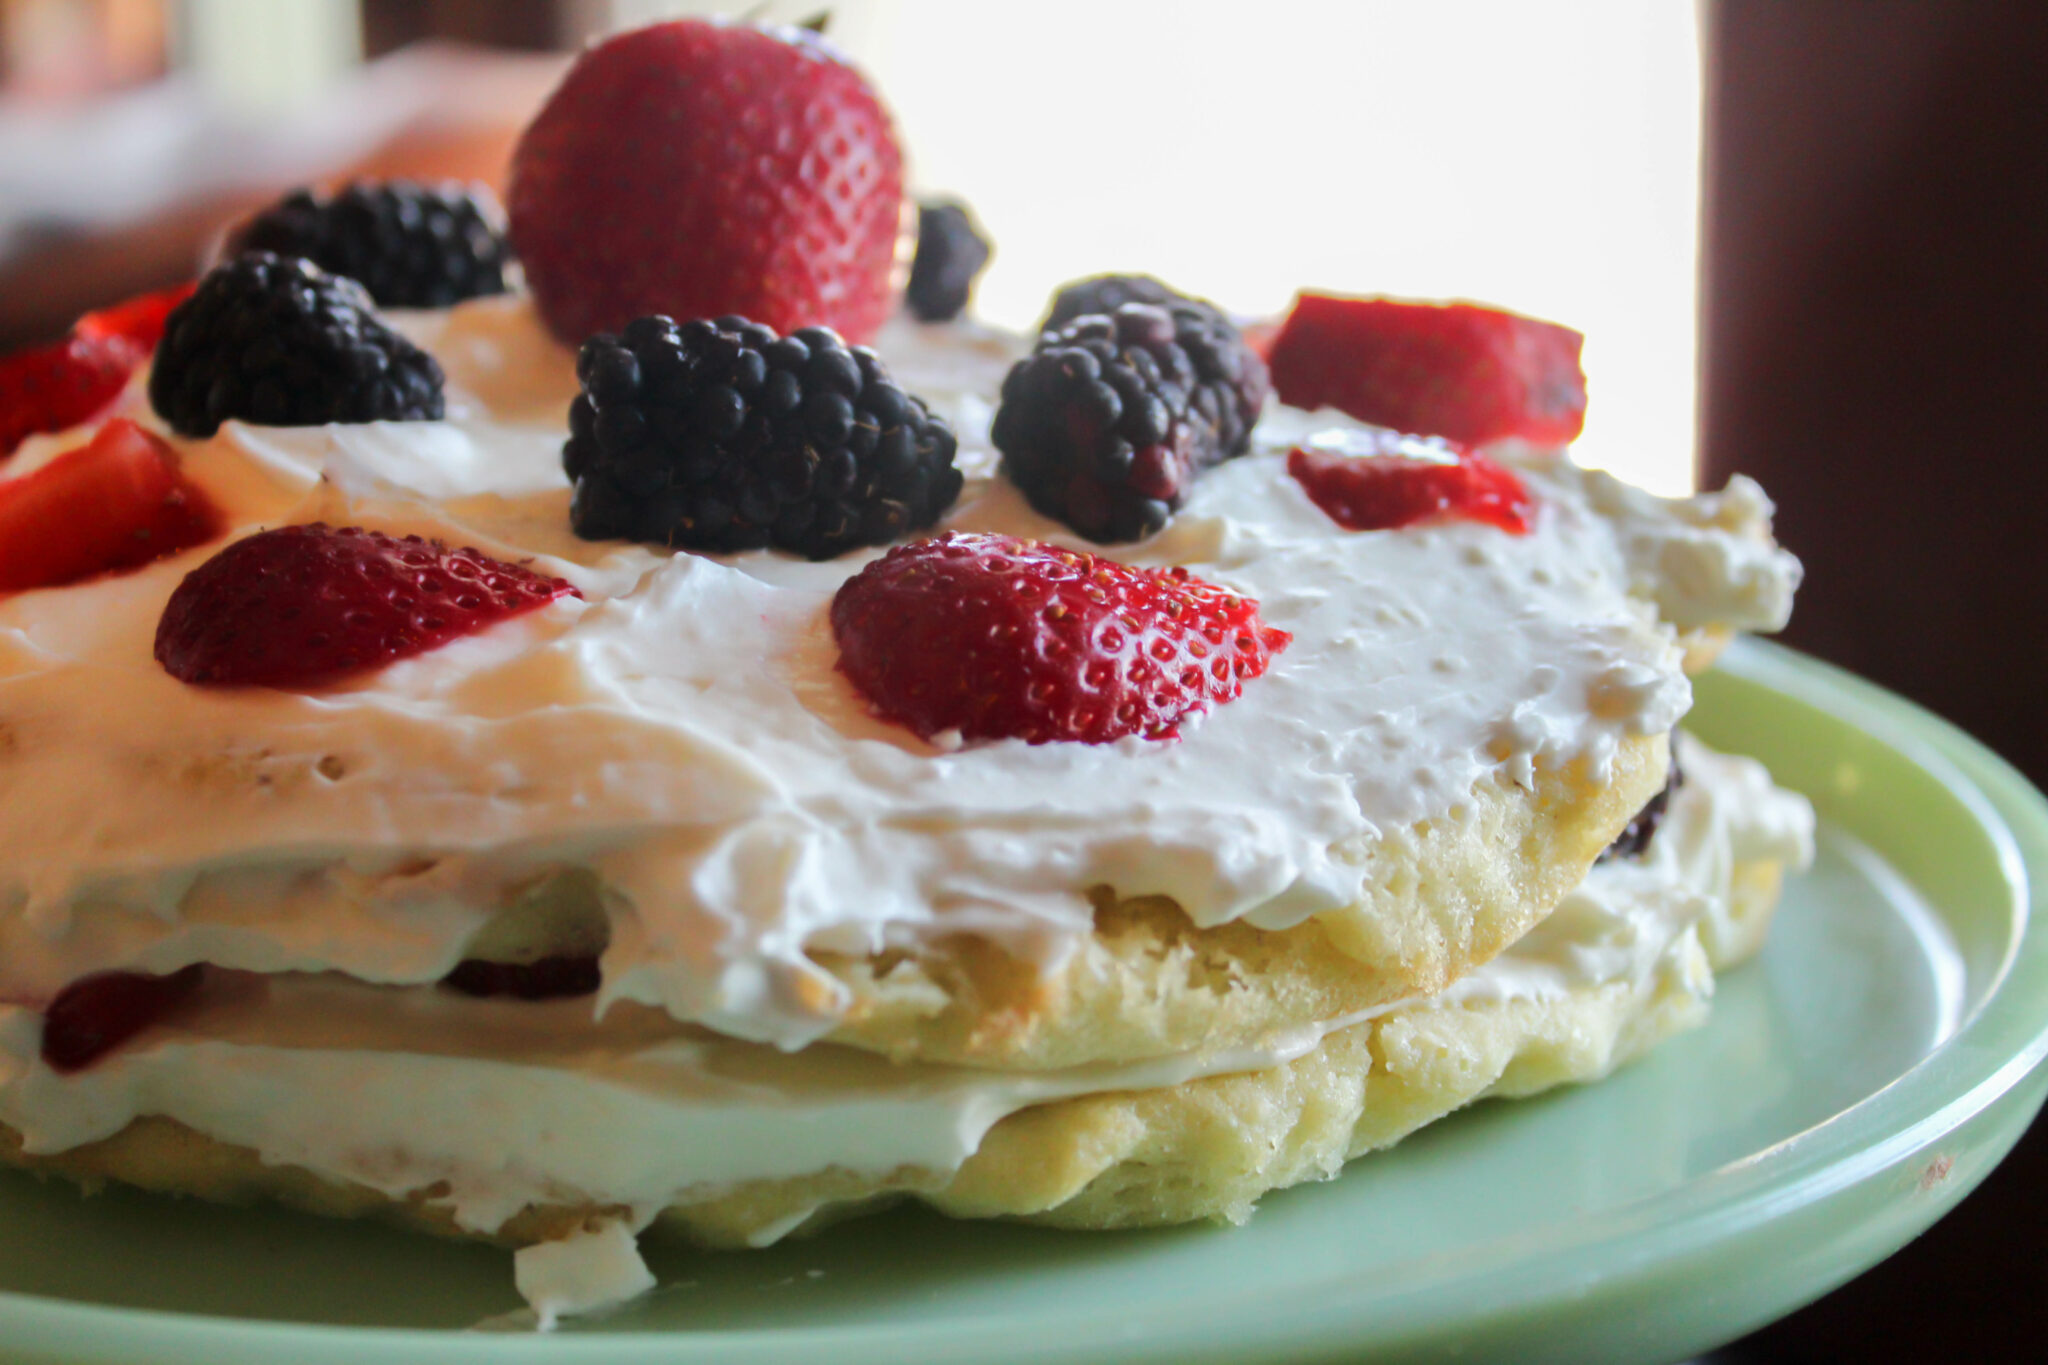 My Berries and Cream Cake is not only delicious but beautiful! It has two decadent layers stuffed with a cream cheese icing and berries!